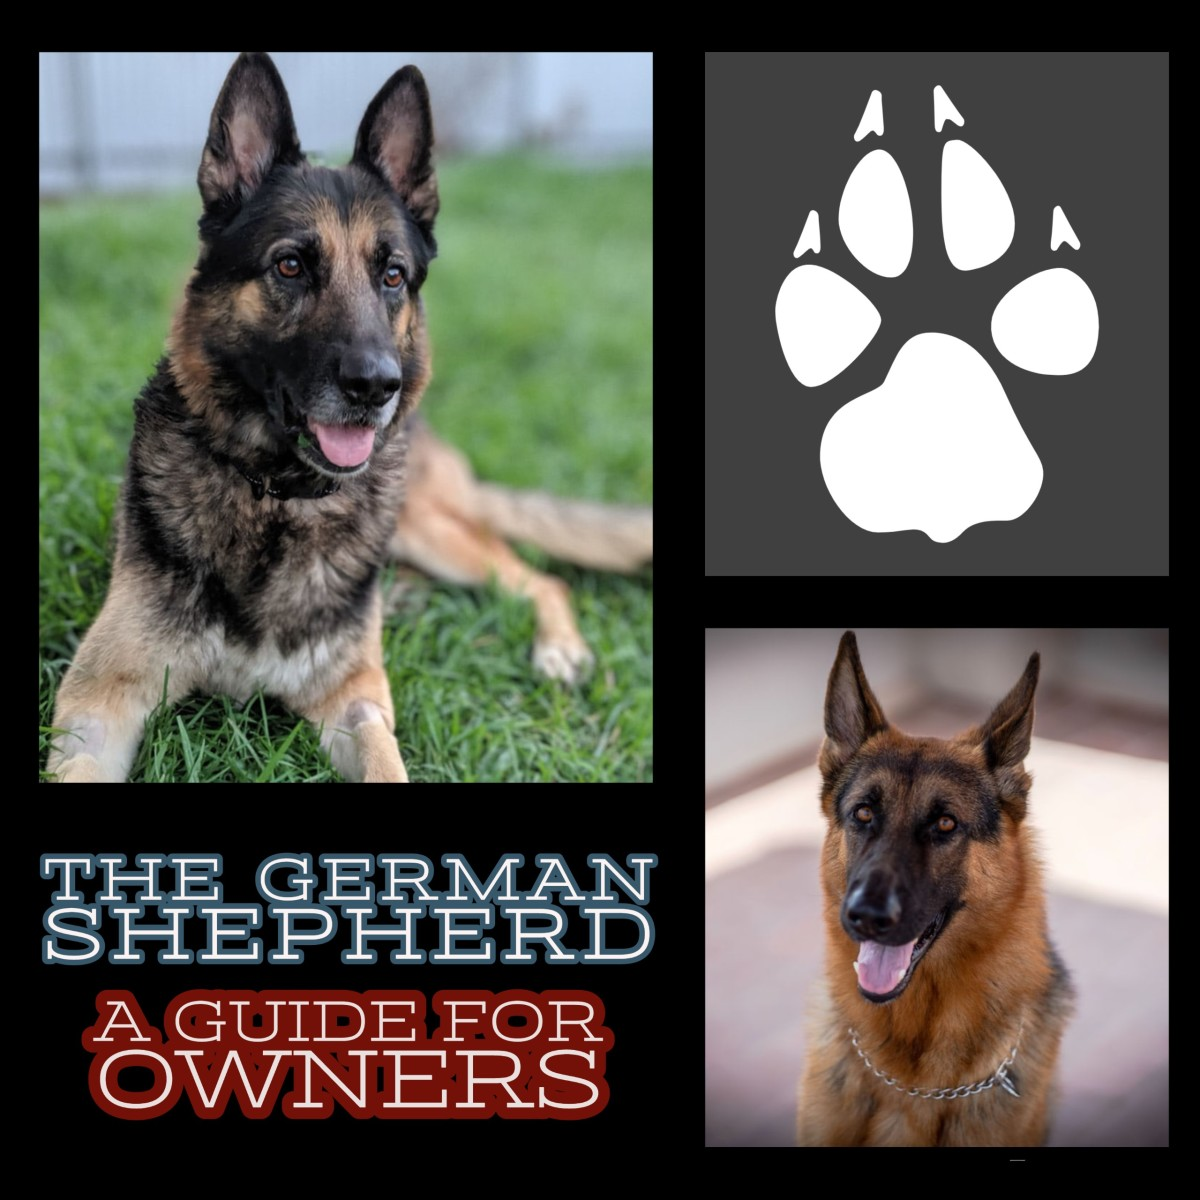 The German Shepherd: A Guide for Owners.